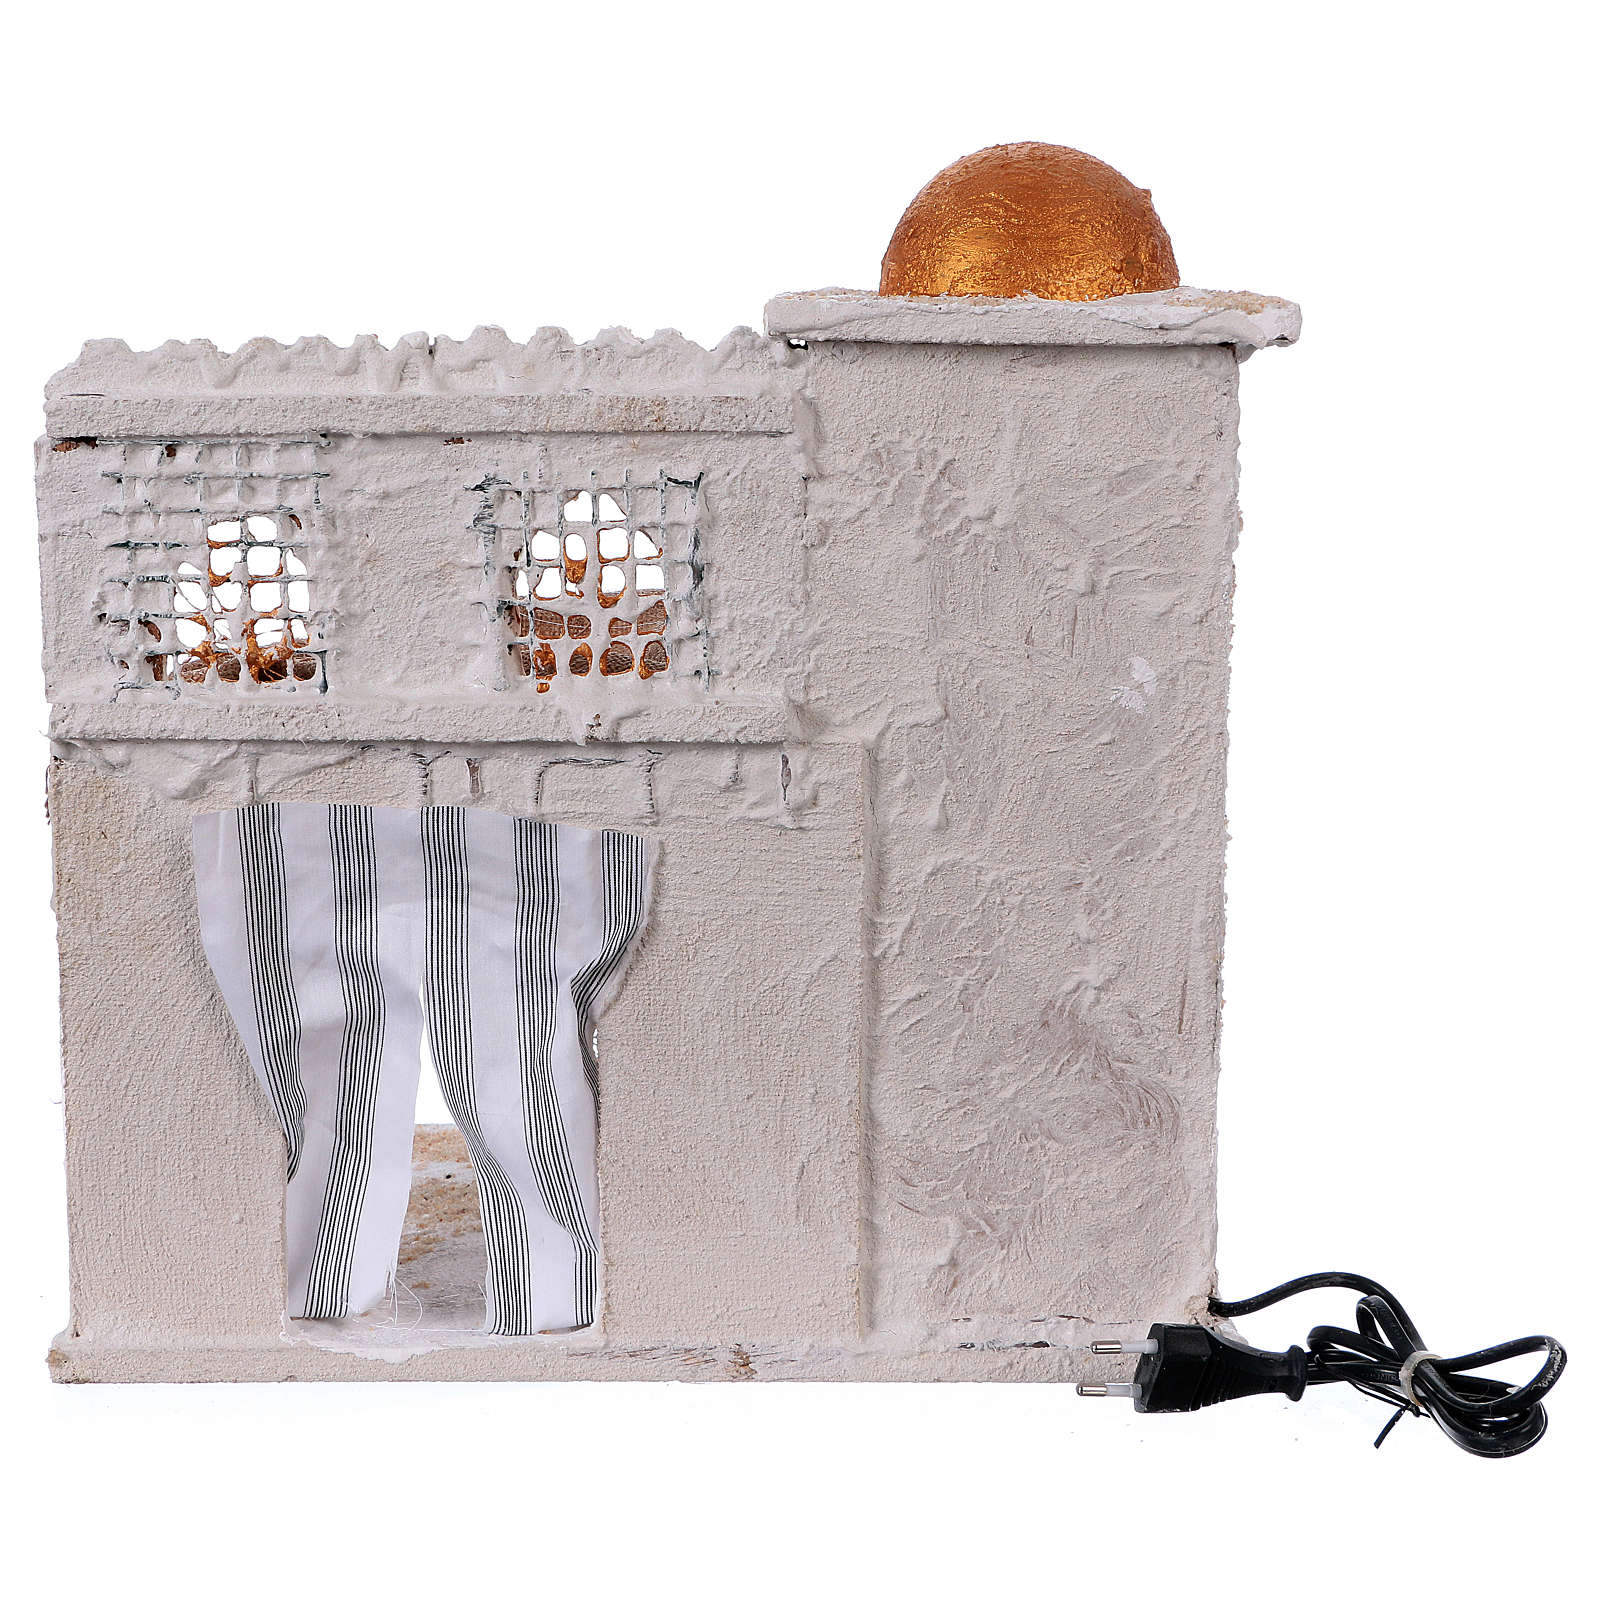 Arabian style house with domes and pillars for Nativity scene 36x35x27 cm 4